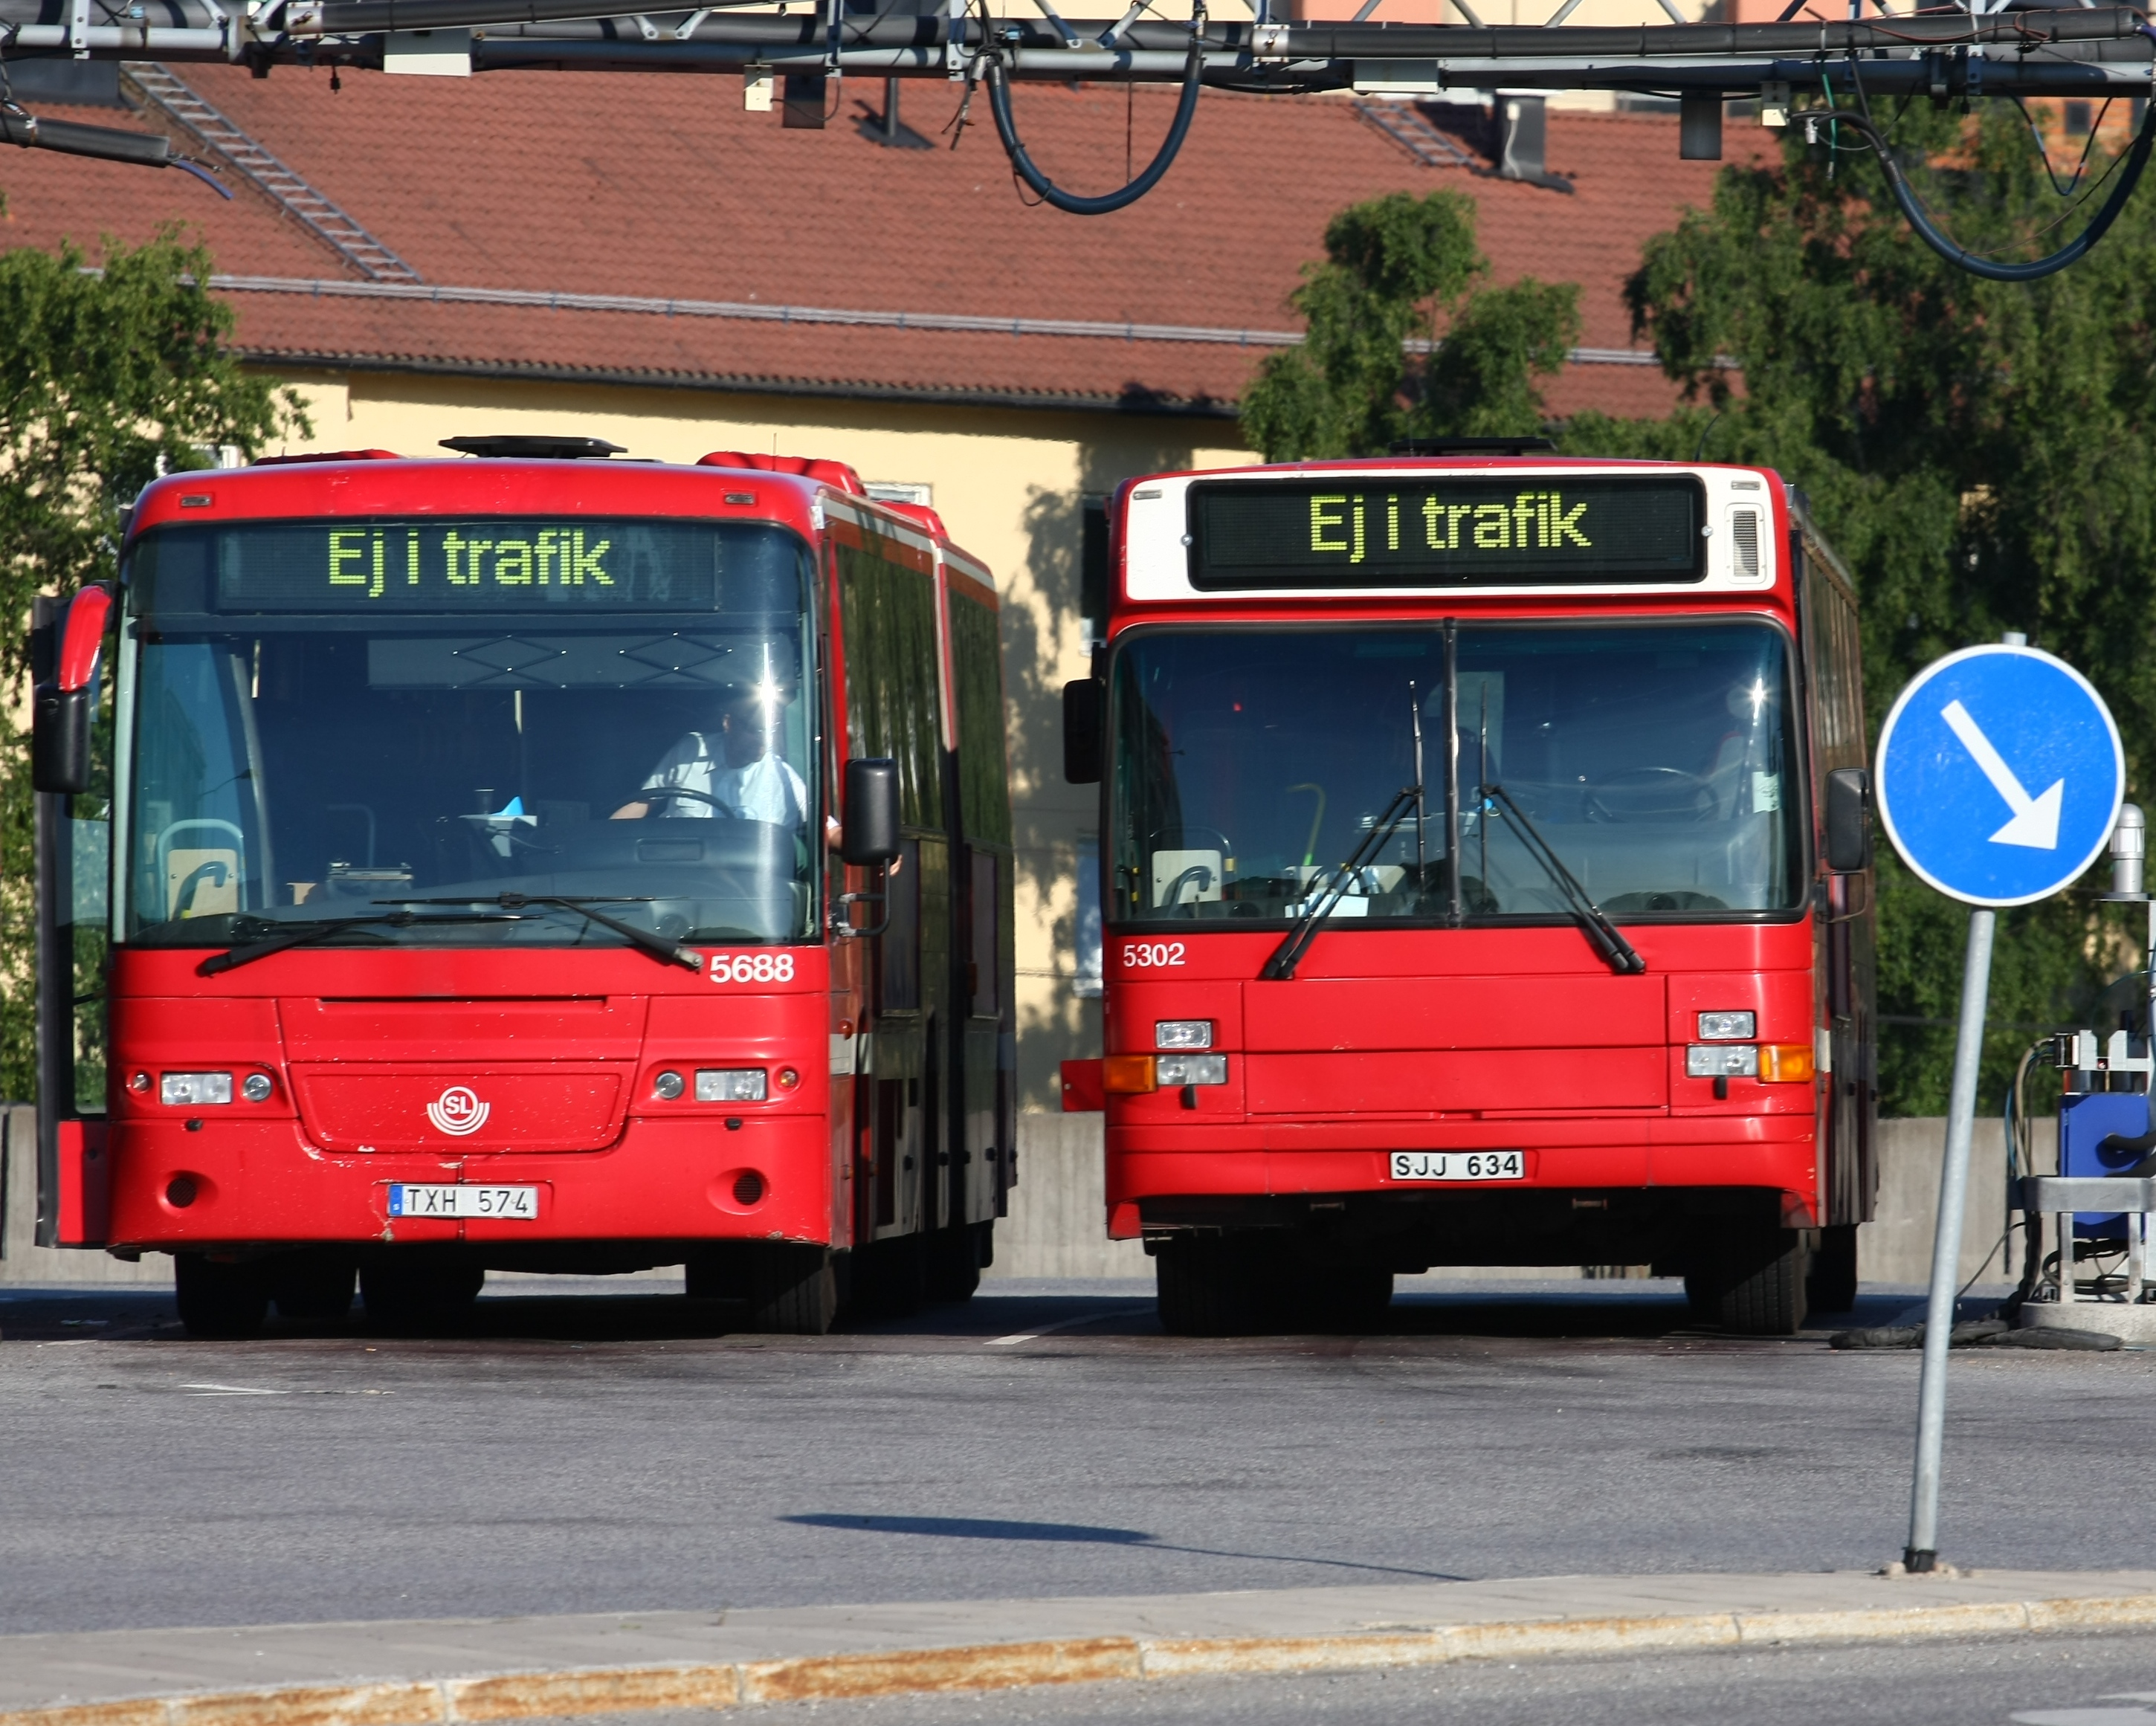 file:ej i trafik (3676118668) - wikimedia commons